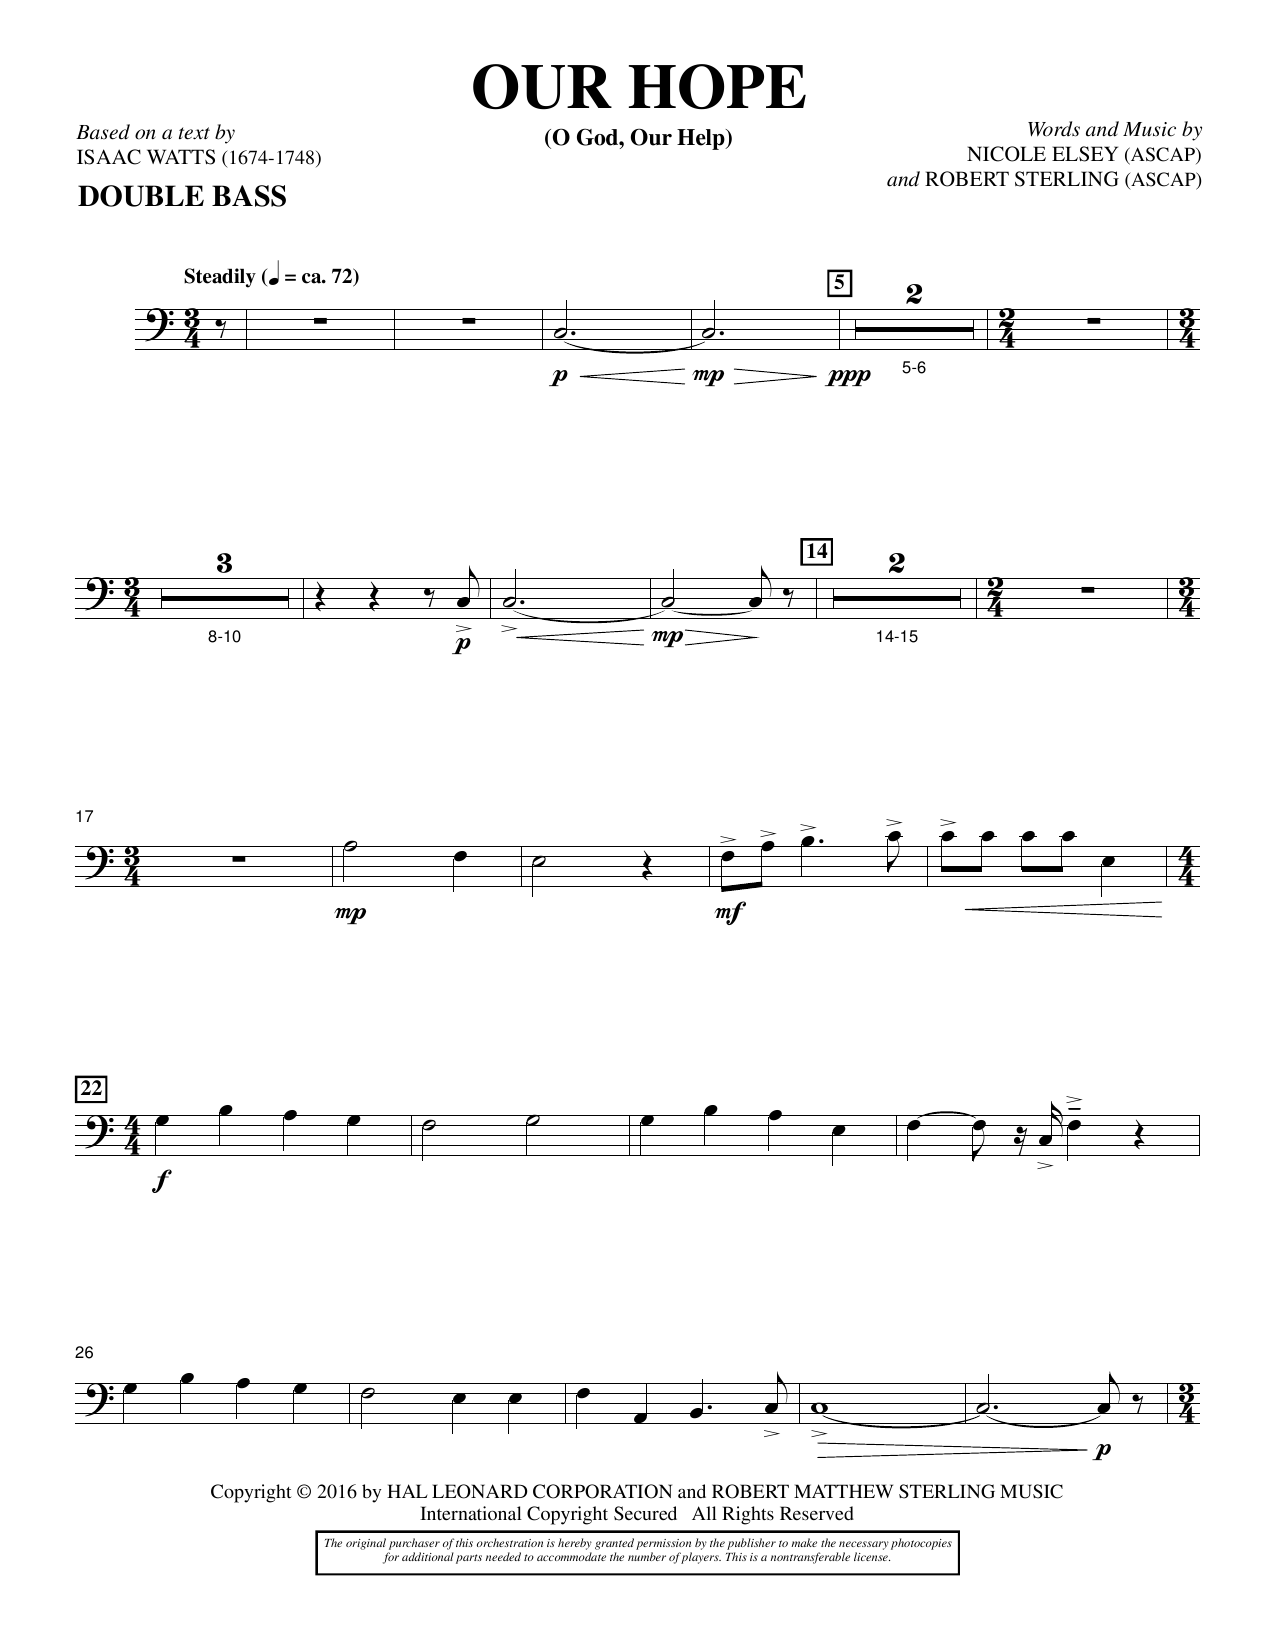 Our Hope - Double Bass Sheet Music